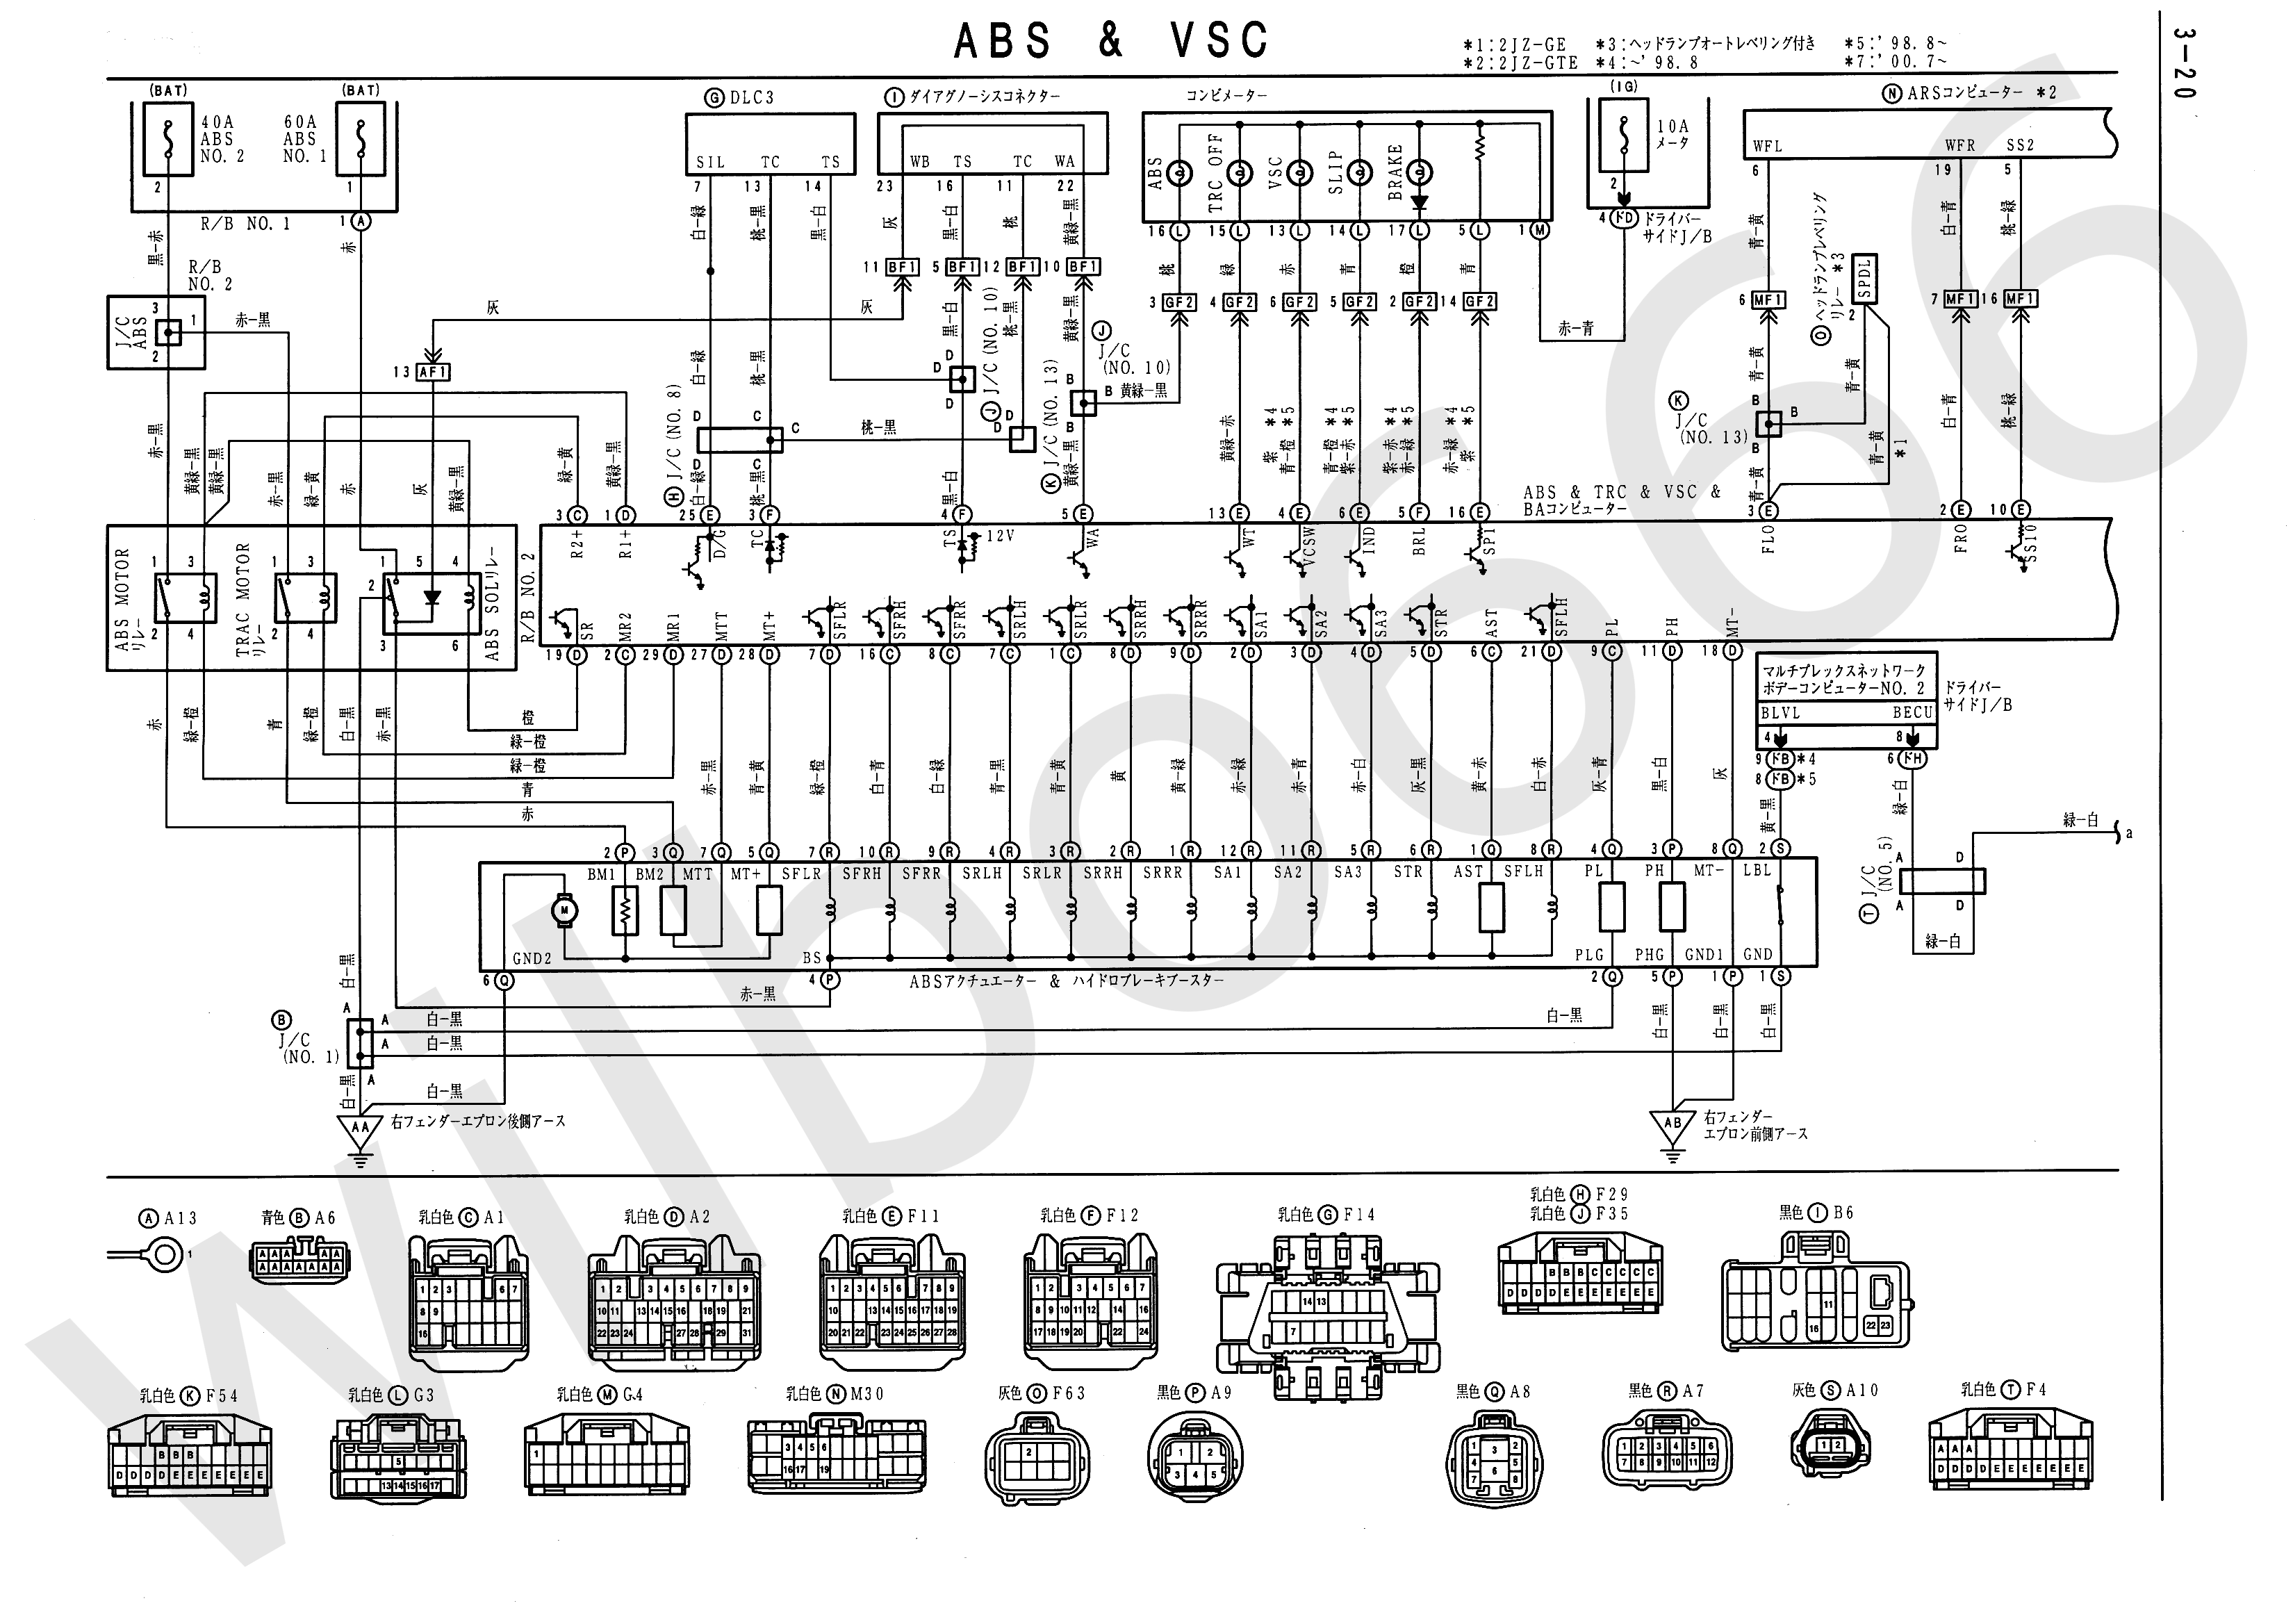 JZS161 Electrical Wiring Diagram 6748505 3 20?resize\\\\\\\\\\\\\\\\\\\\\\\\\\\\\\\\\\\\\\\\\\\\\\\\\\\\\\\\\\\\\\\\\\\\\\\\\\\\\\\\\\\\\\\\\\\\\\\\\\\\\\\=665%2C471 lennox furnace wiring diagram & solved wiring diagram for longwood furnance wiring diagram at soozxer.org